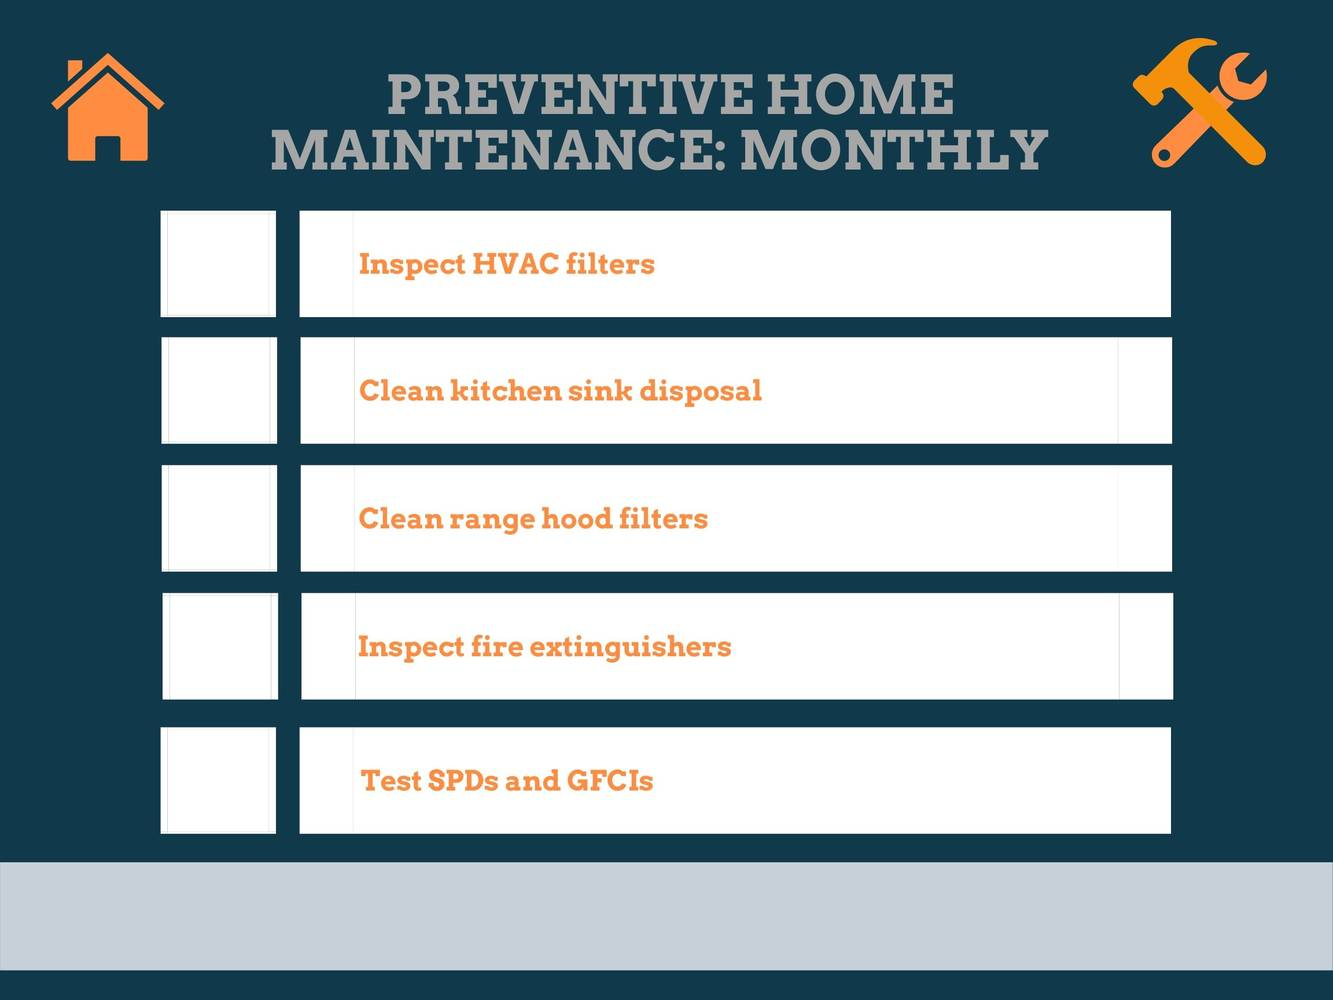 Monthly Preventive Home Maintenance